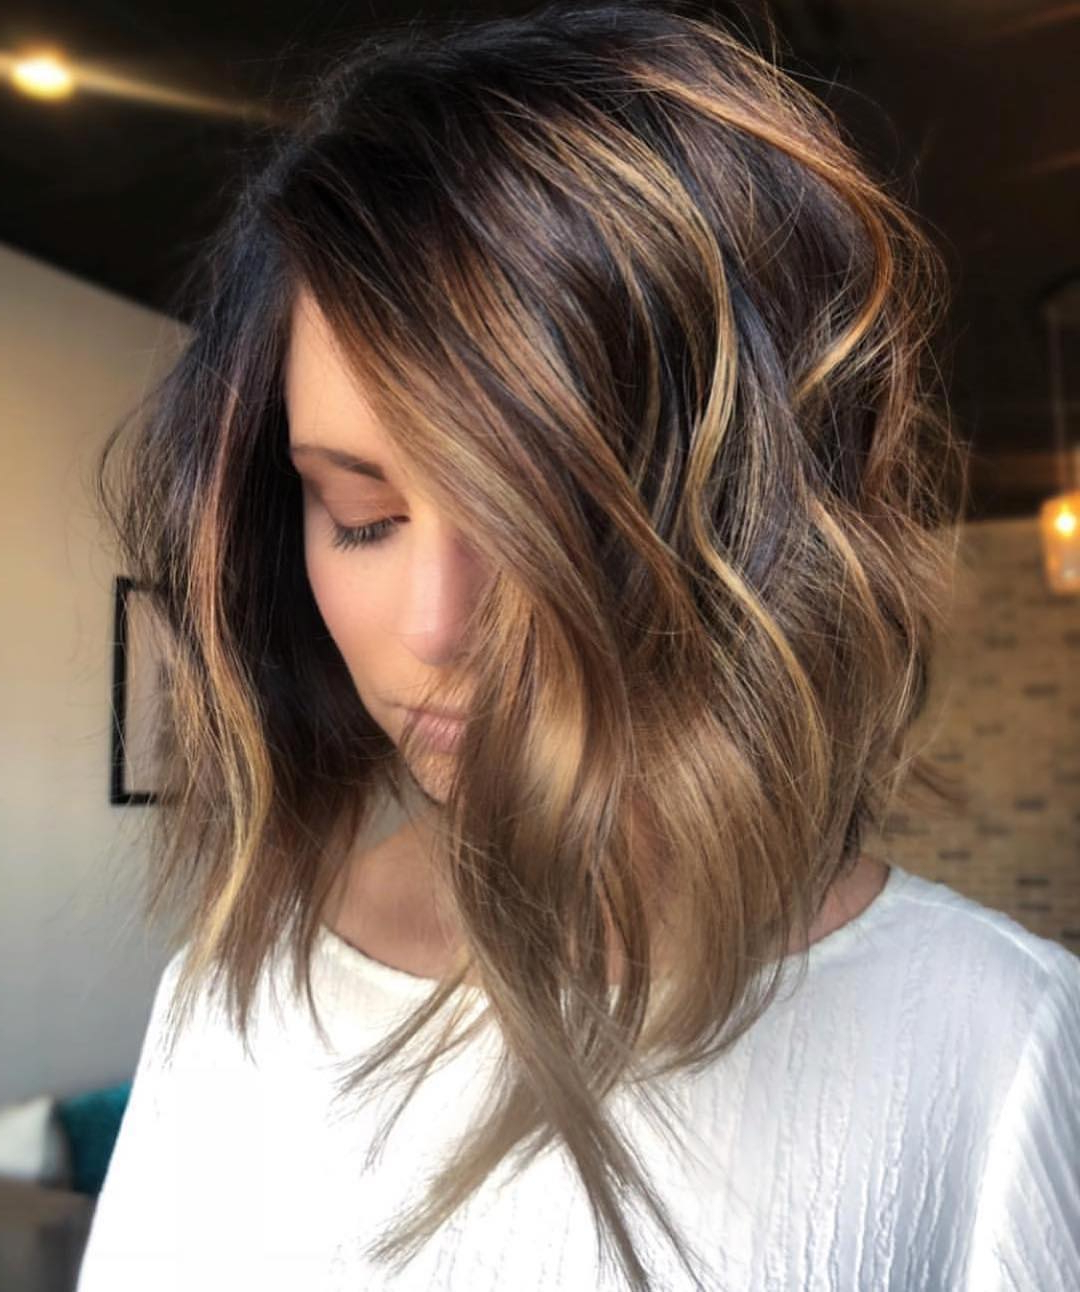 10 Trendy Ombre And Balayage Hairstyles For Shoulder Inside Beachy Waves Hairstyles With Balayage Ombre (View 17 of 20)